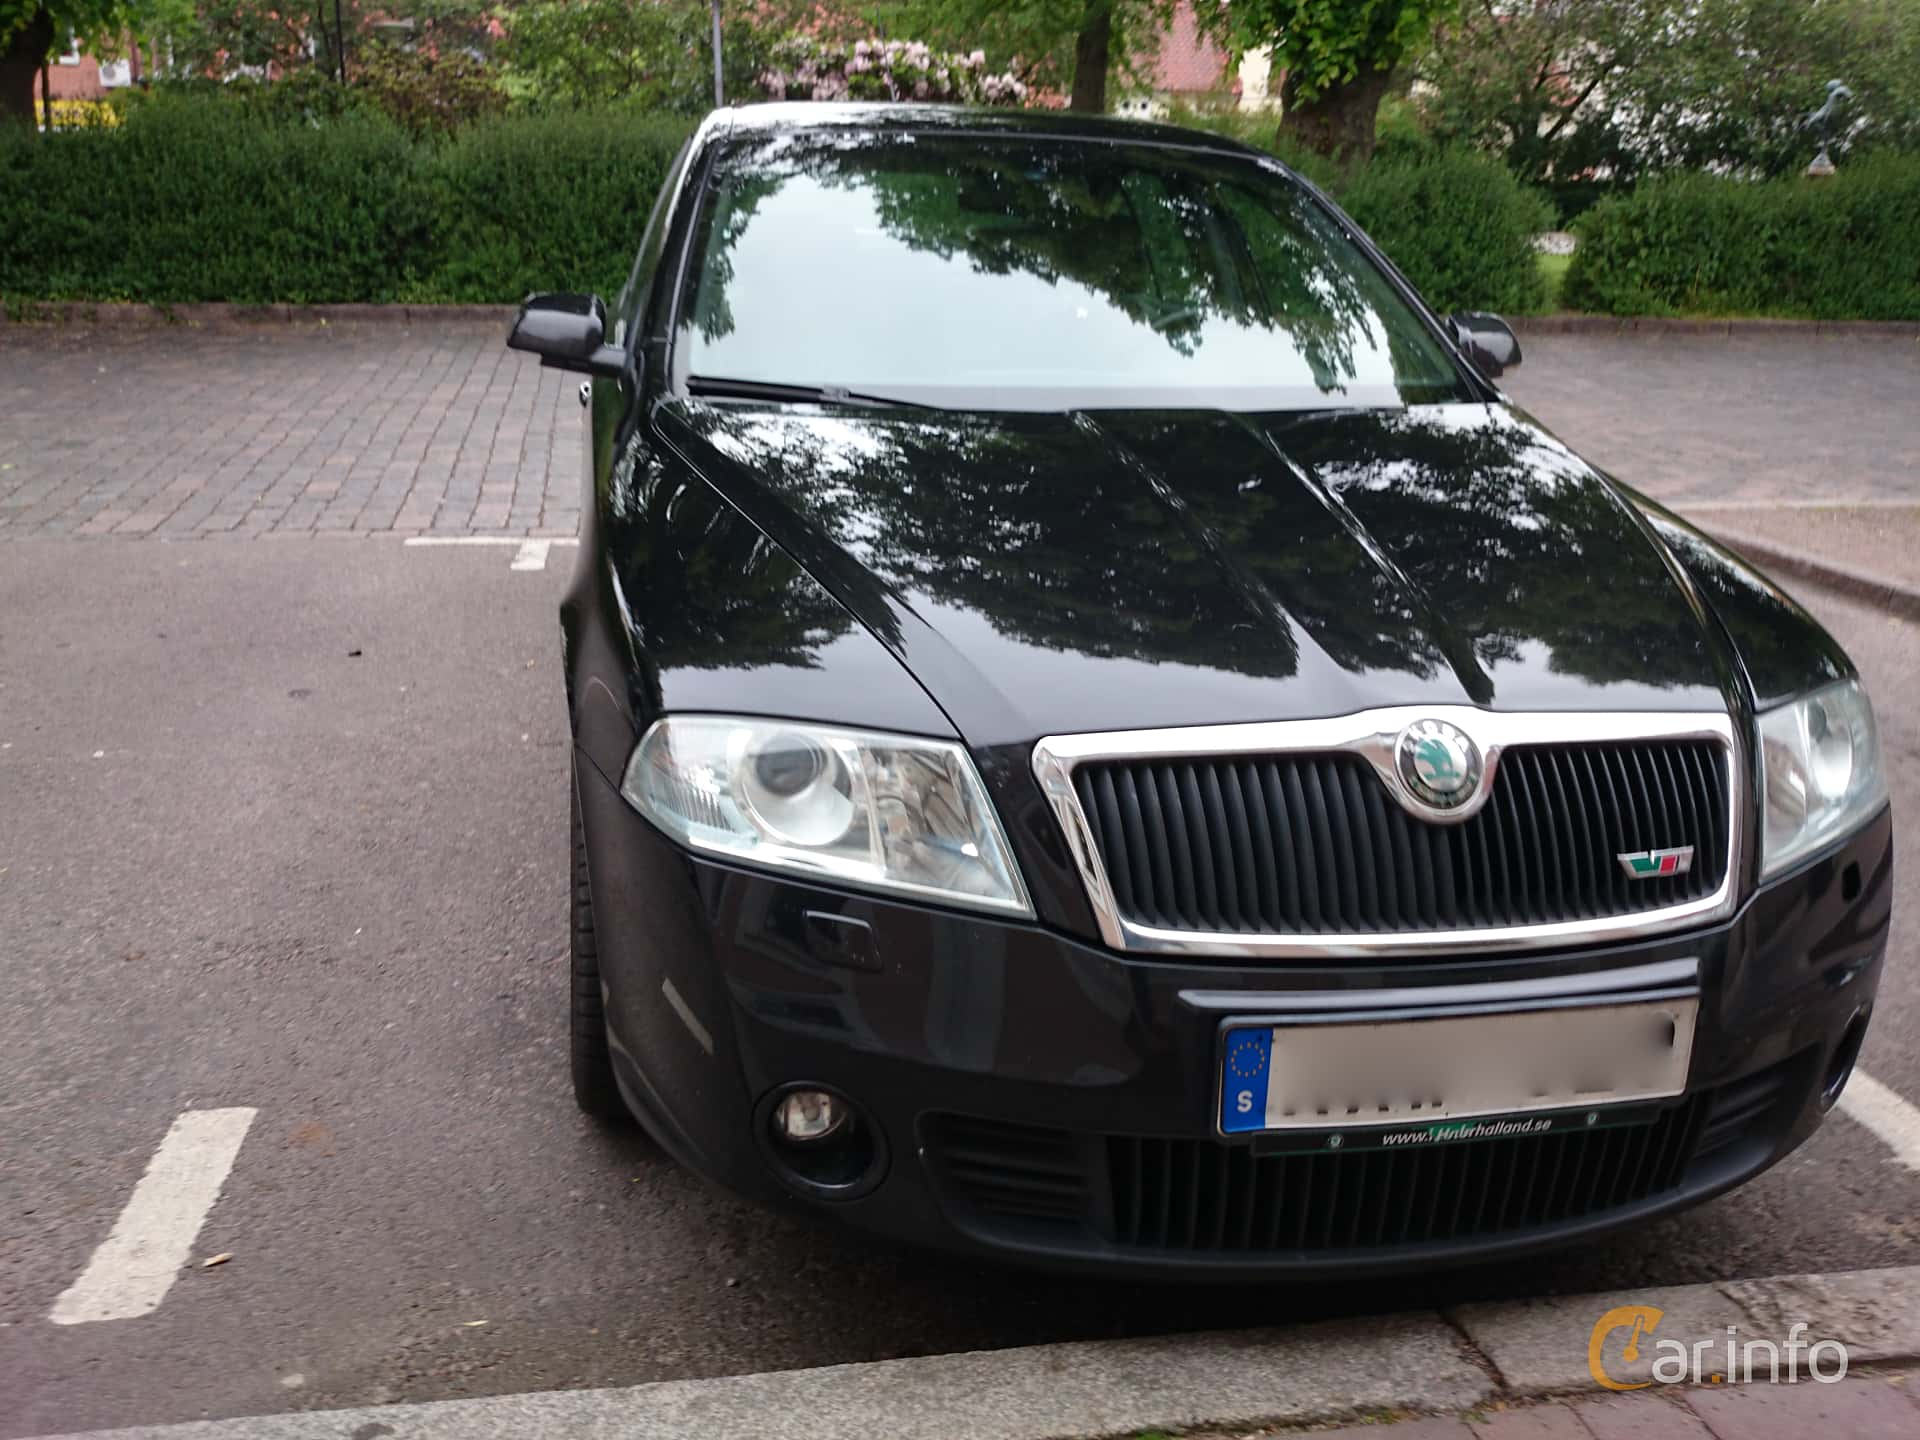 skoda octavia rs 2 0 tfsi manuell 200hk 2006. Black Bedroom Furniture Sets. Home Design Ideas